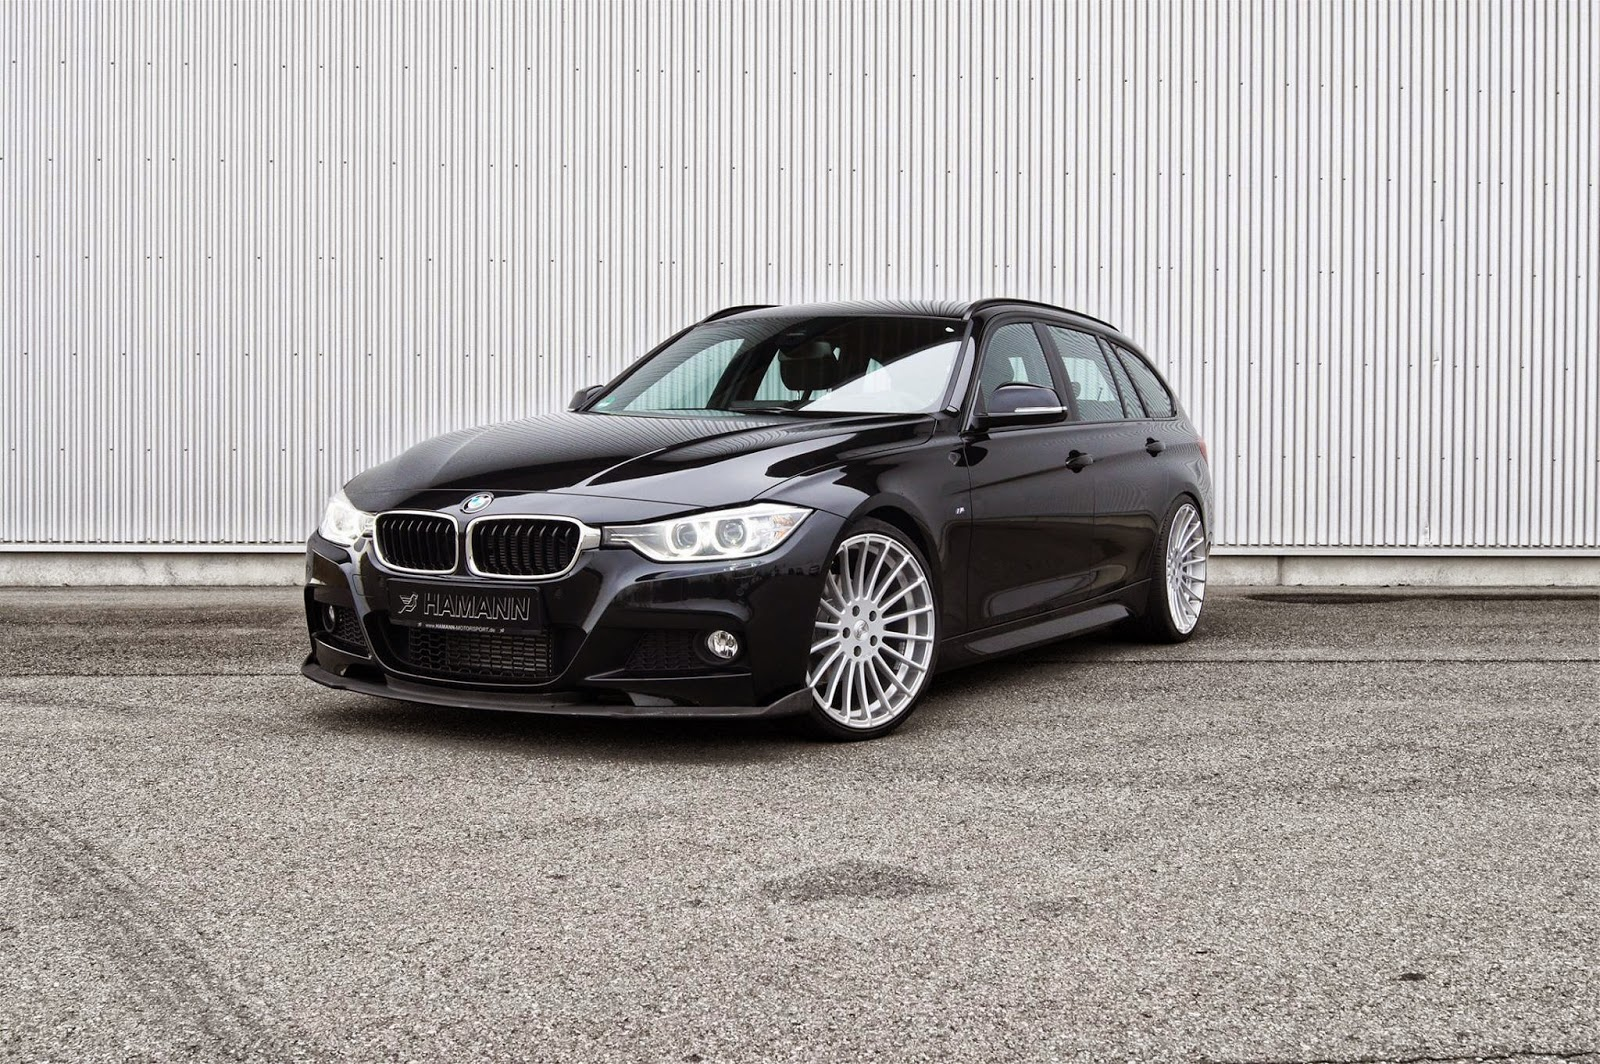 supercars show bmw f31 3 series touring by hamann motorsport. Black Bedroom Furniture Sets. Home Design Ideas